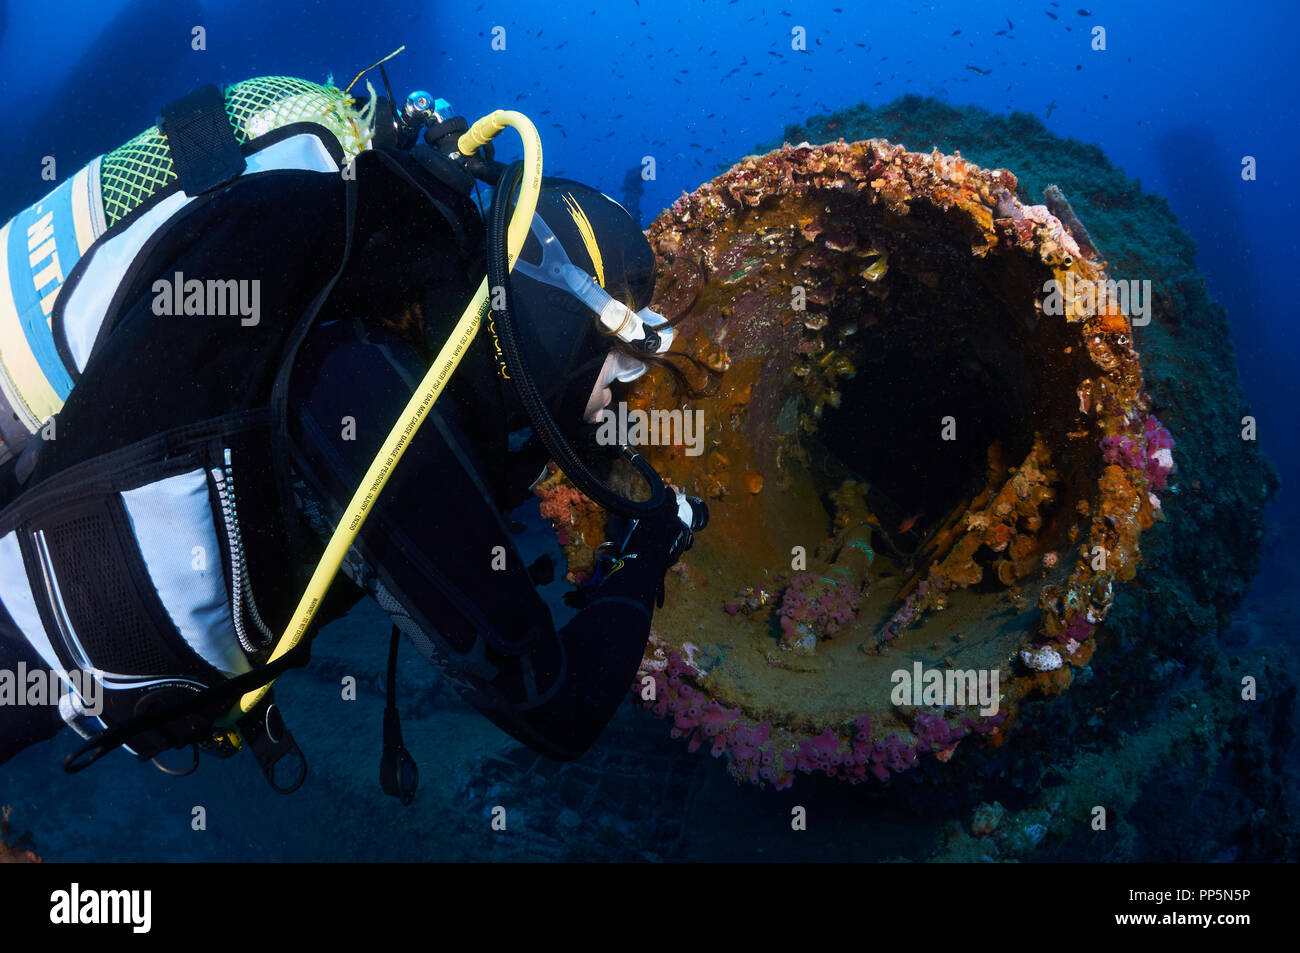 Female scuba diver with torch exploring the inside of a big tube with encrusted marine life at La Plataforma wreck (Formentera,Balearic Islands,Spain) - Stock Image